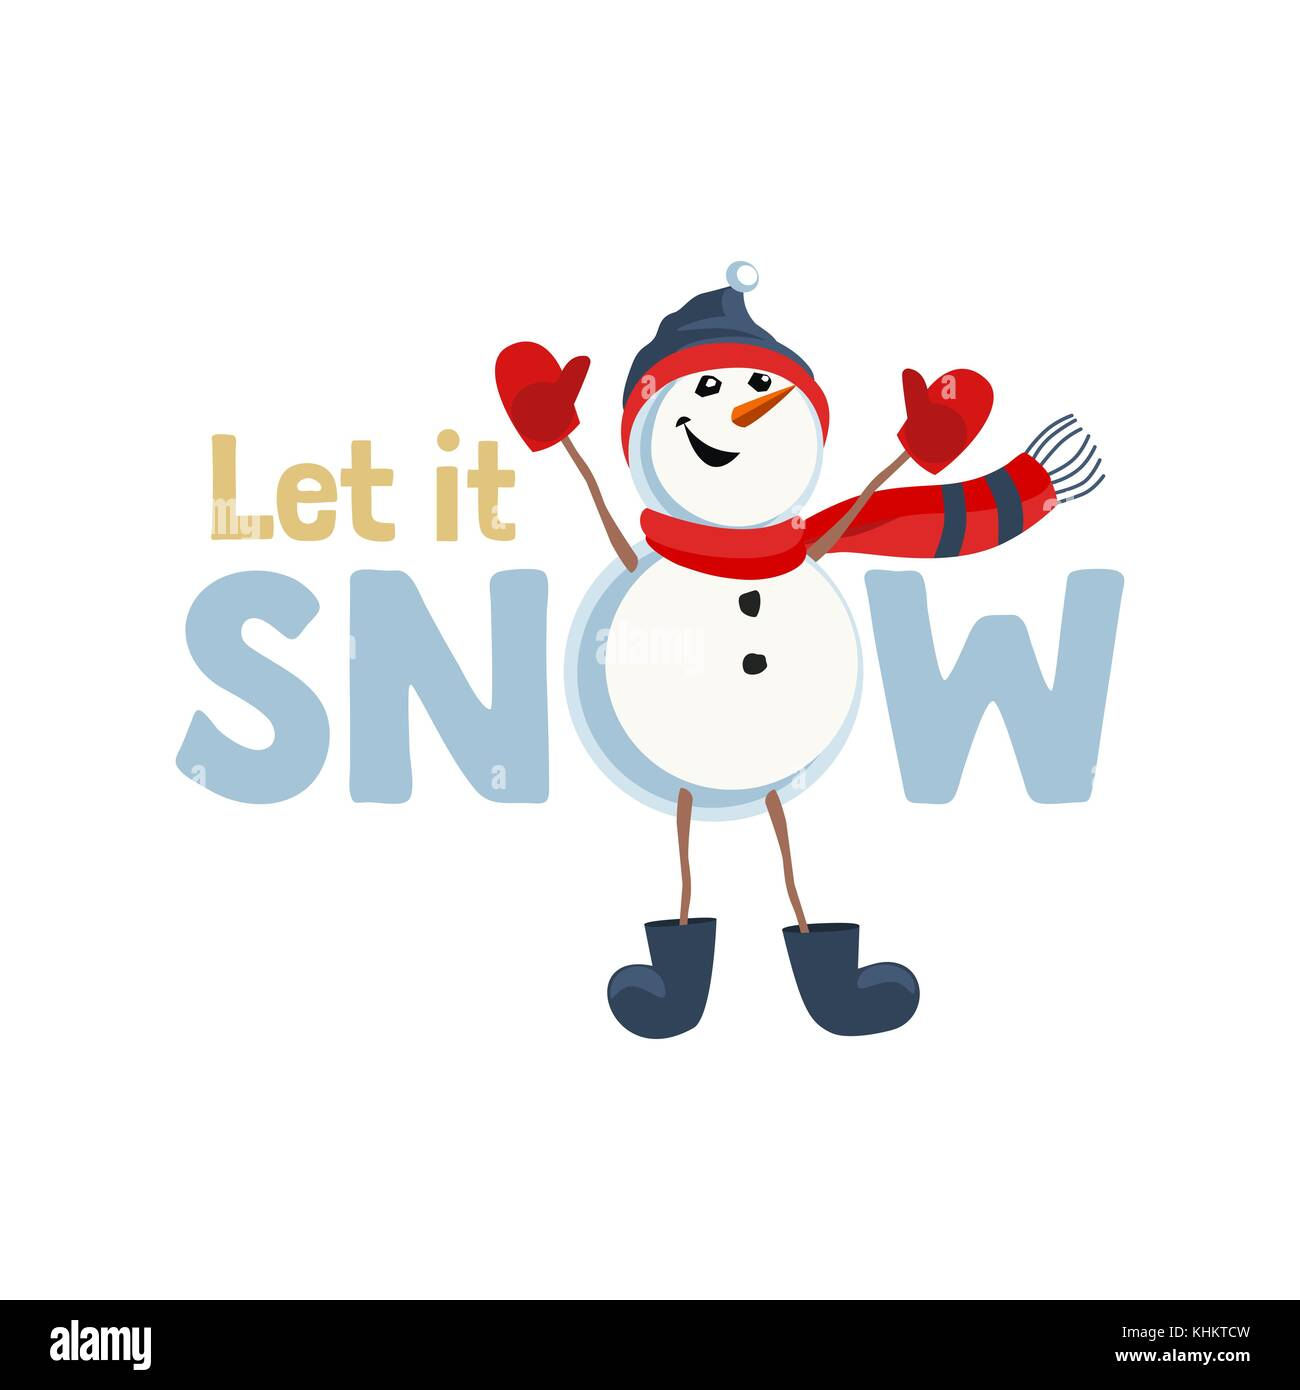 Holiday wishes let it snow fancy letters cartoon playful fun stock fancy letters cartoon playful fun snowman snow ball template for merry christmas winter season greeting card background spiritdancerdesigns Gallery